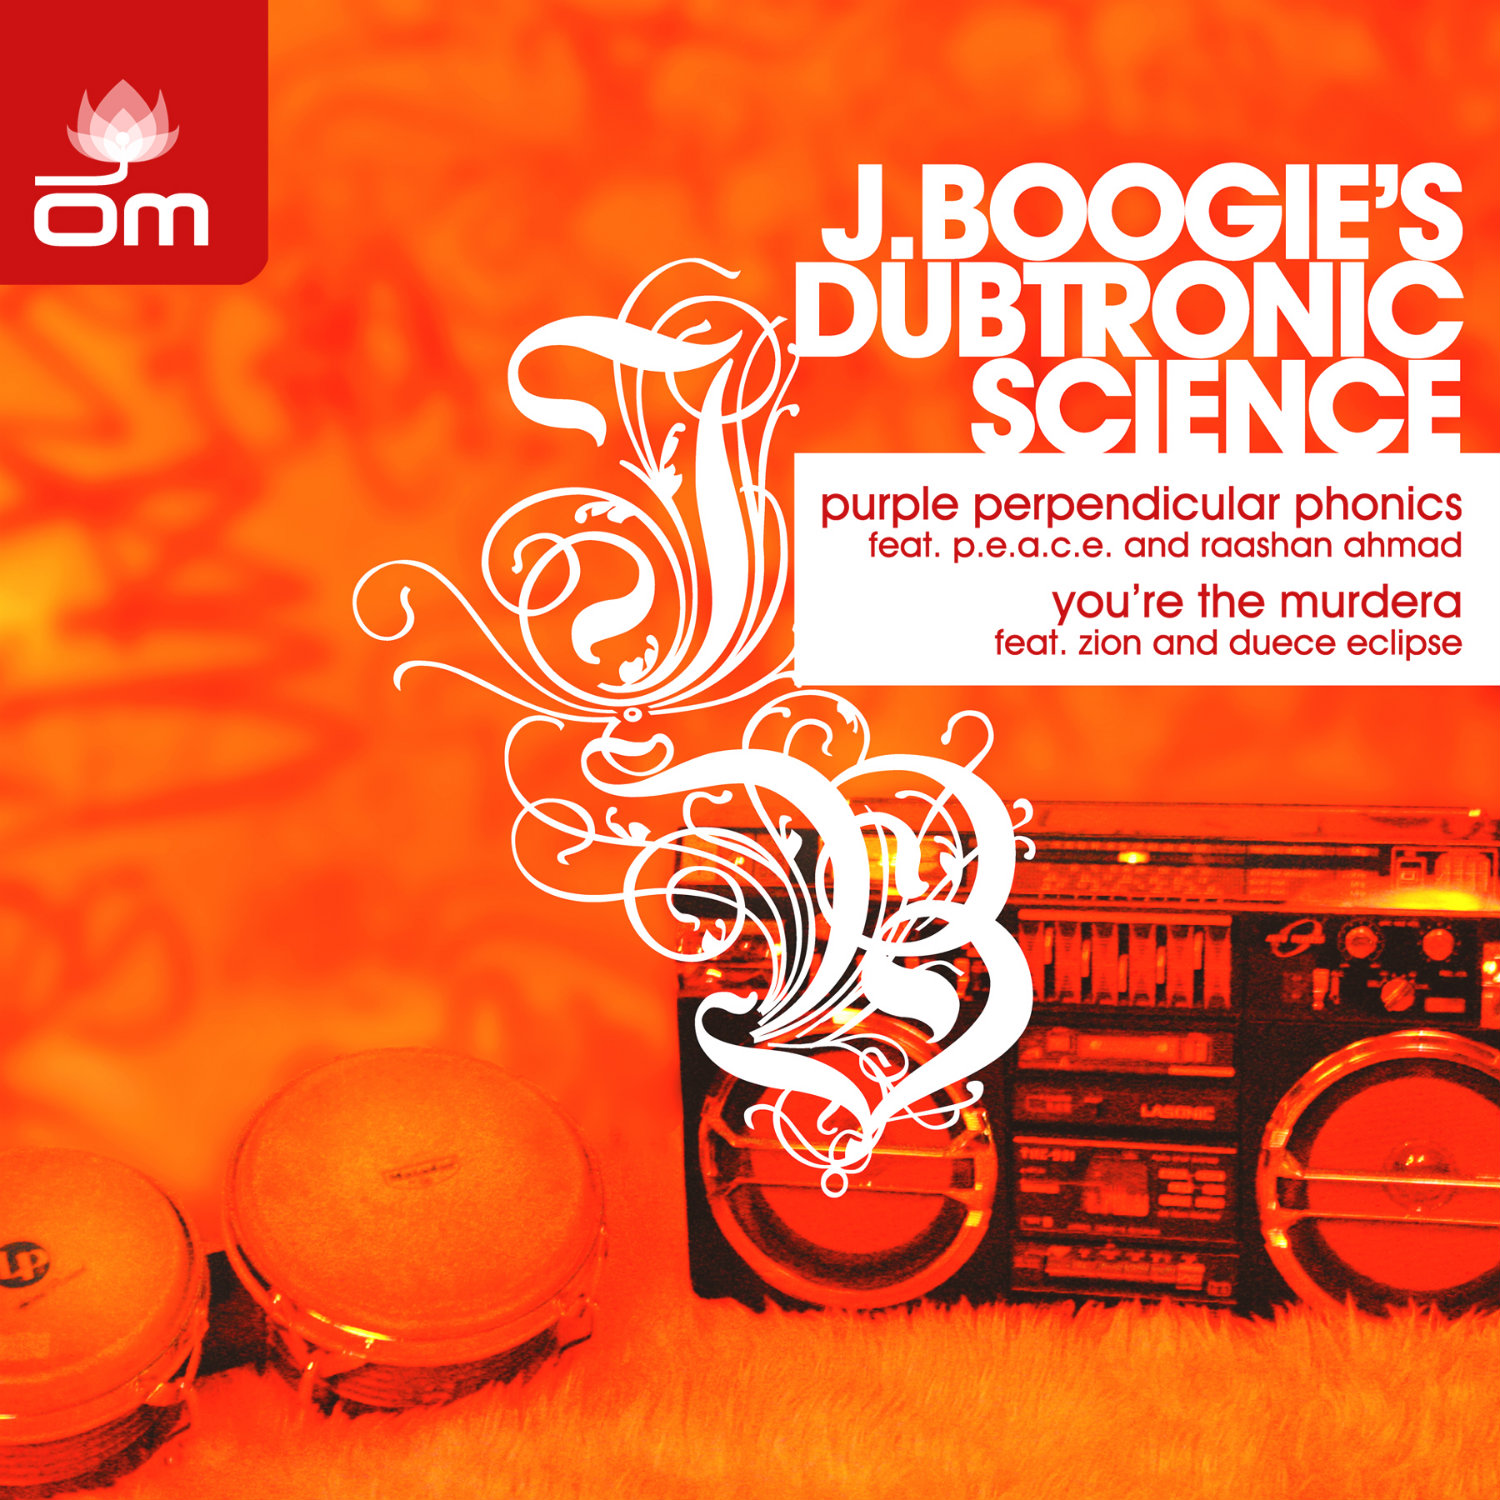 J Boogie's Dubtronic Science - Purple Perpendicular Phonics